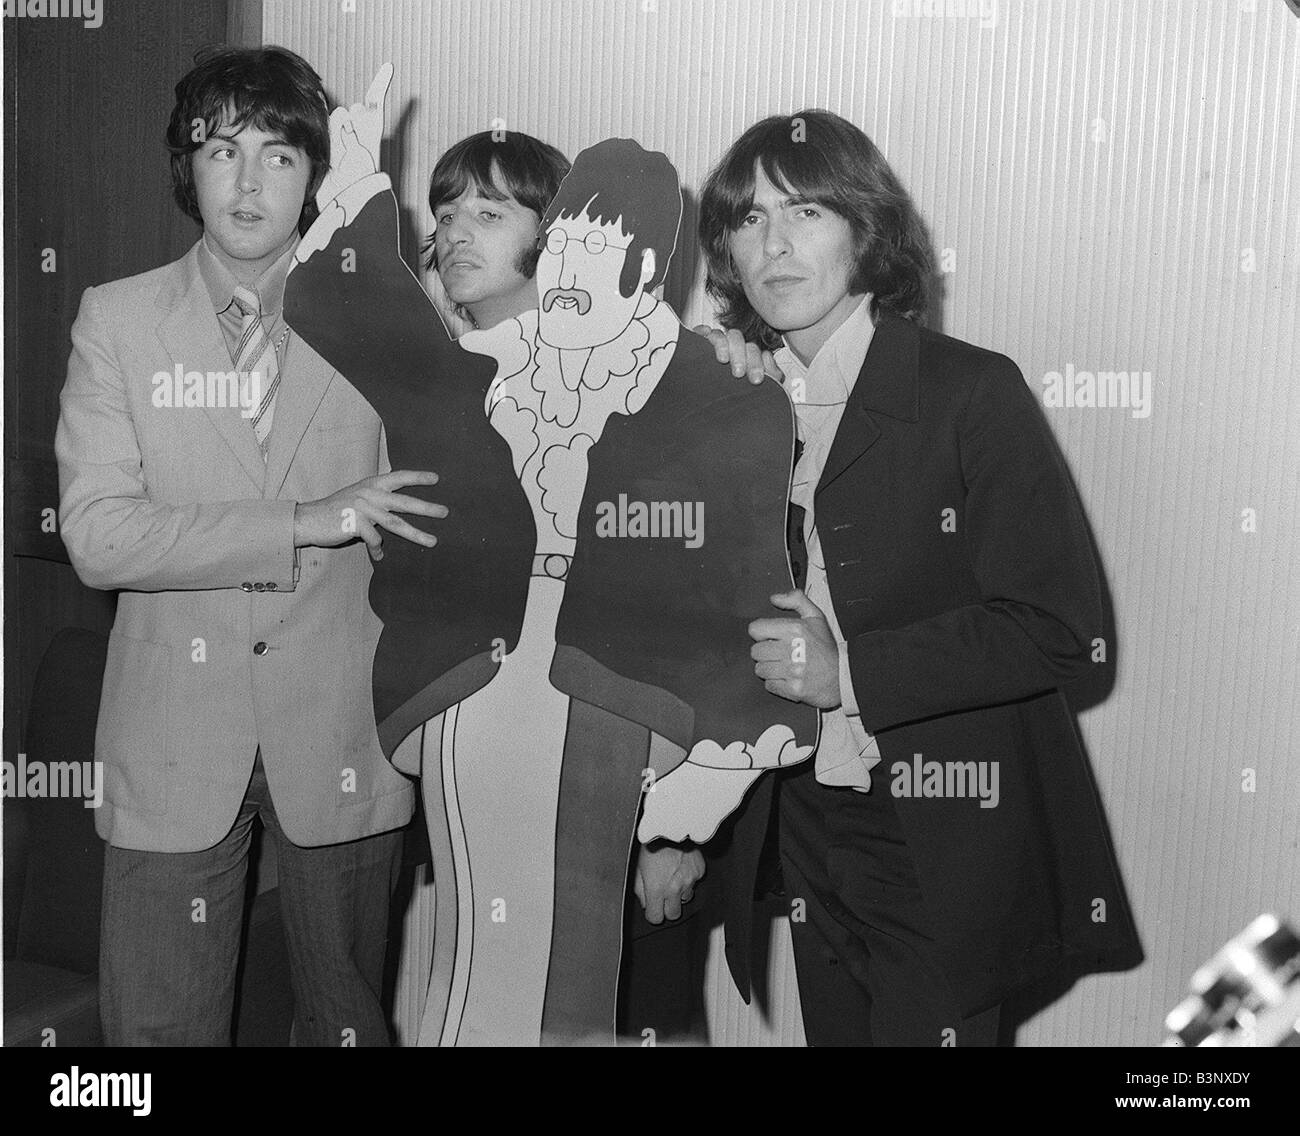 The Beatles 1968 Left To Right Paul McCartney Ringo Starr And George Harrison With A Cardboard